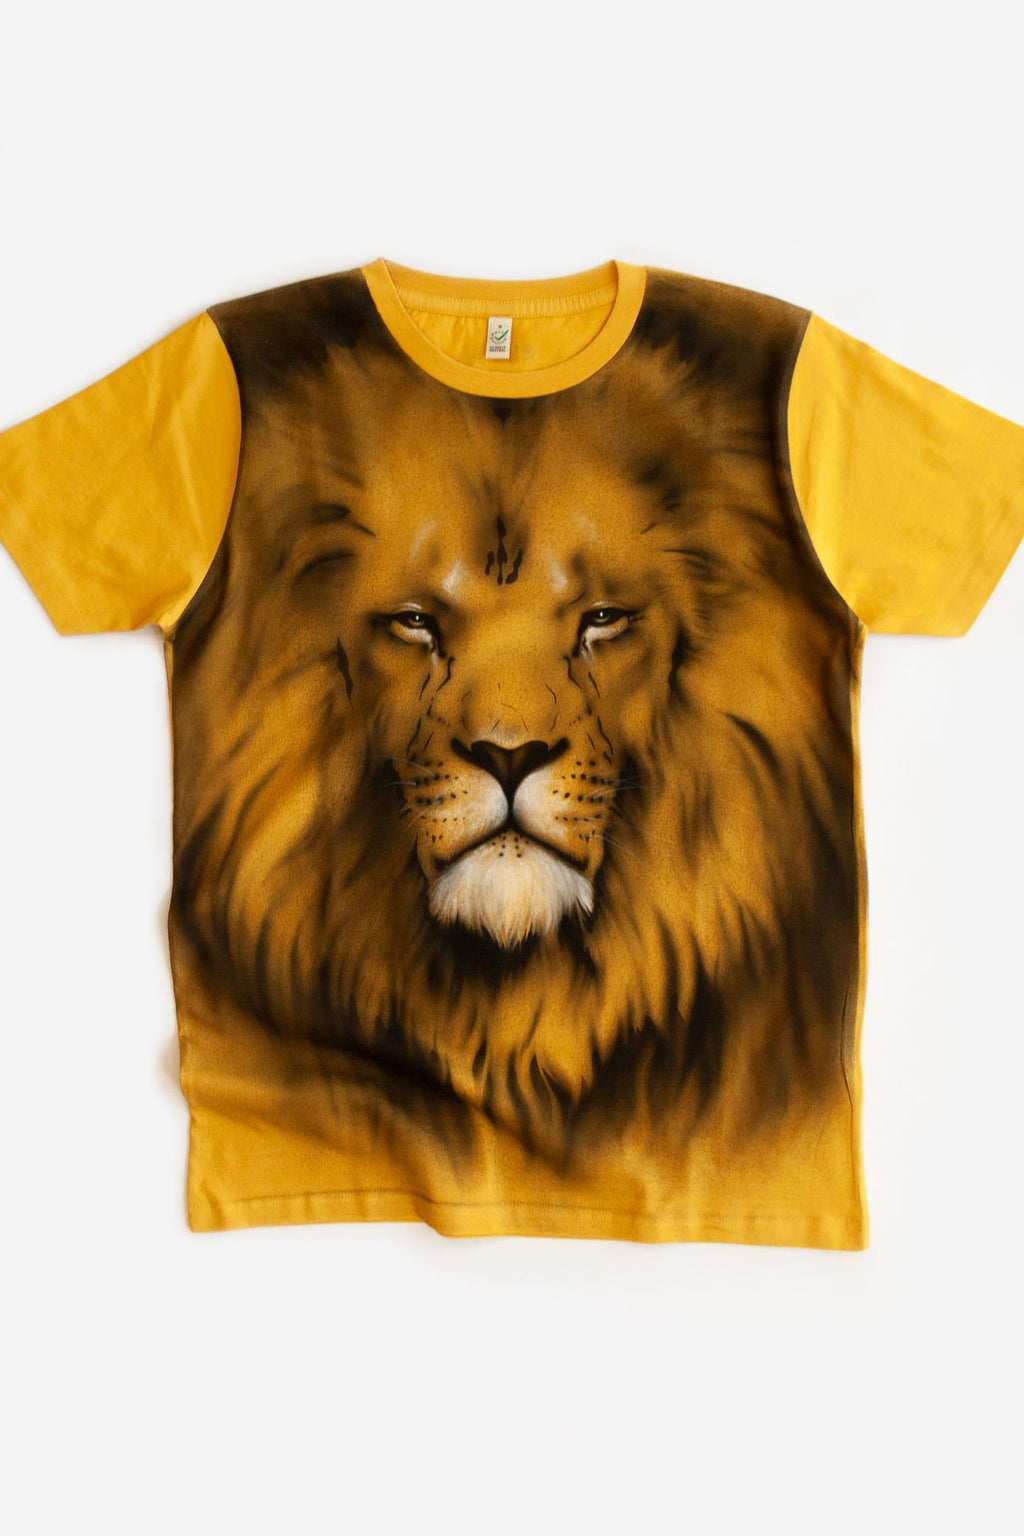 LEO - LIMITED EDITION unisex premium short sleeve t-shirt - BLOW London